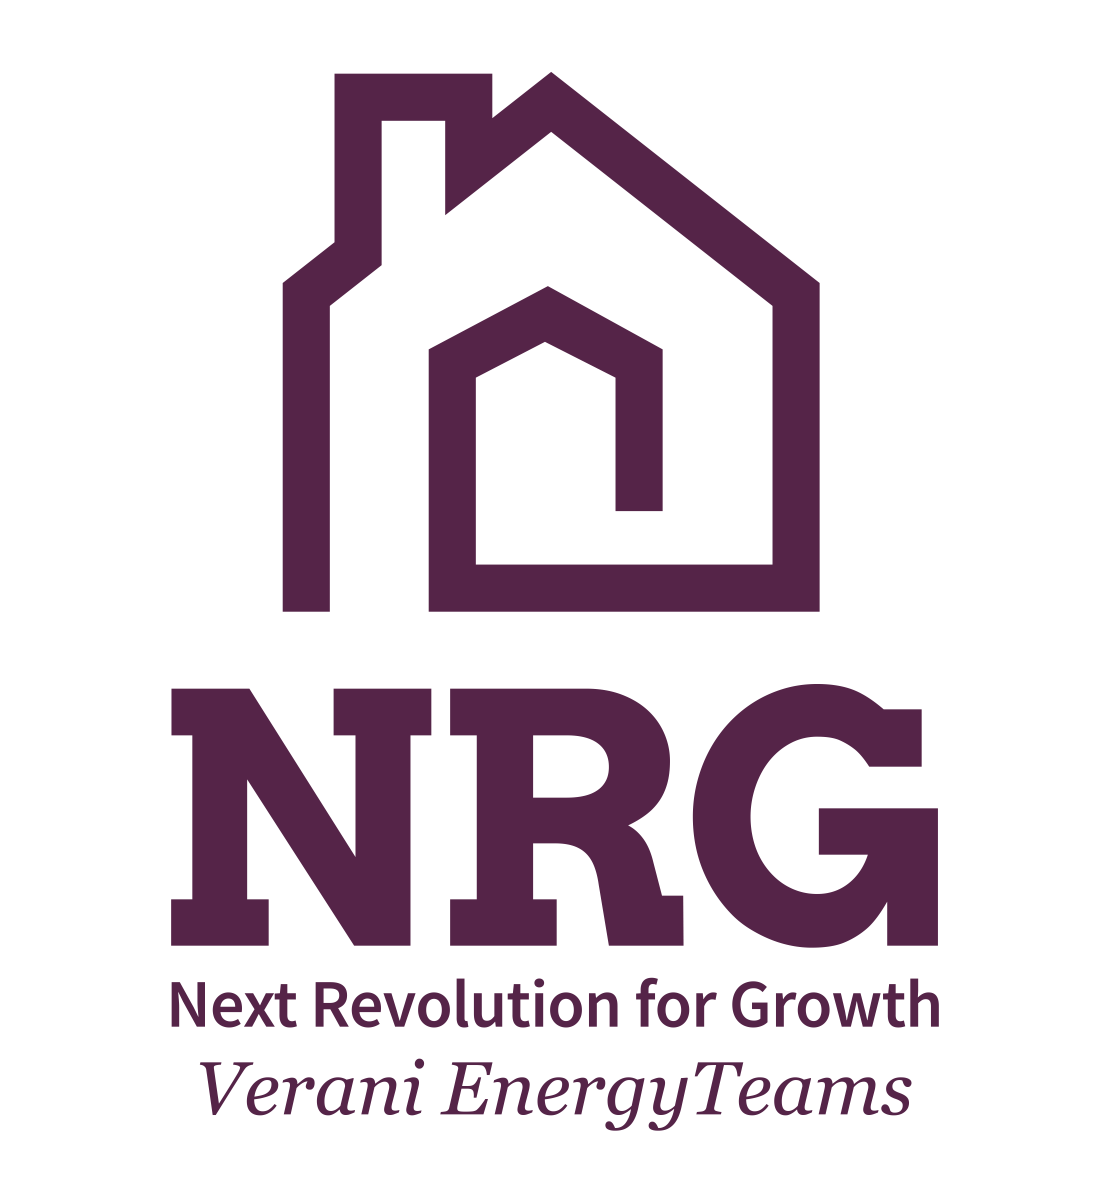 NRG Verani Energy Teams